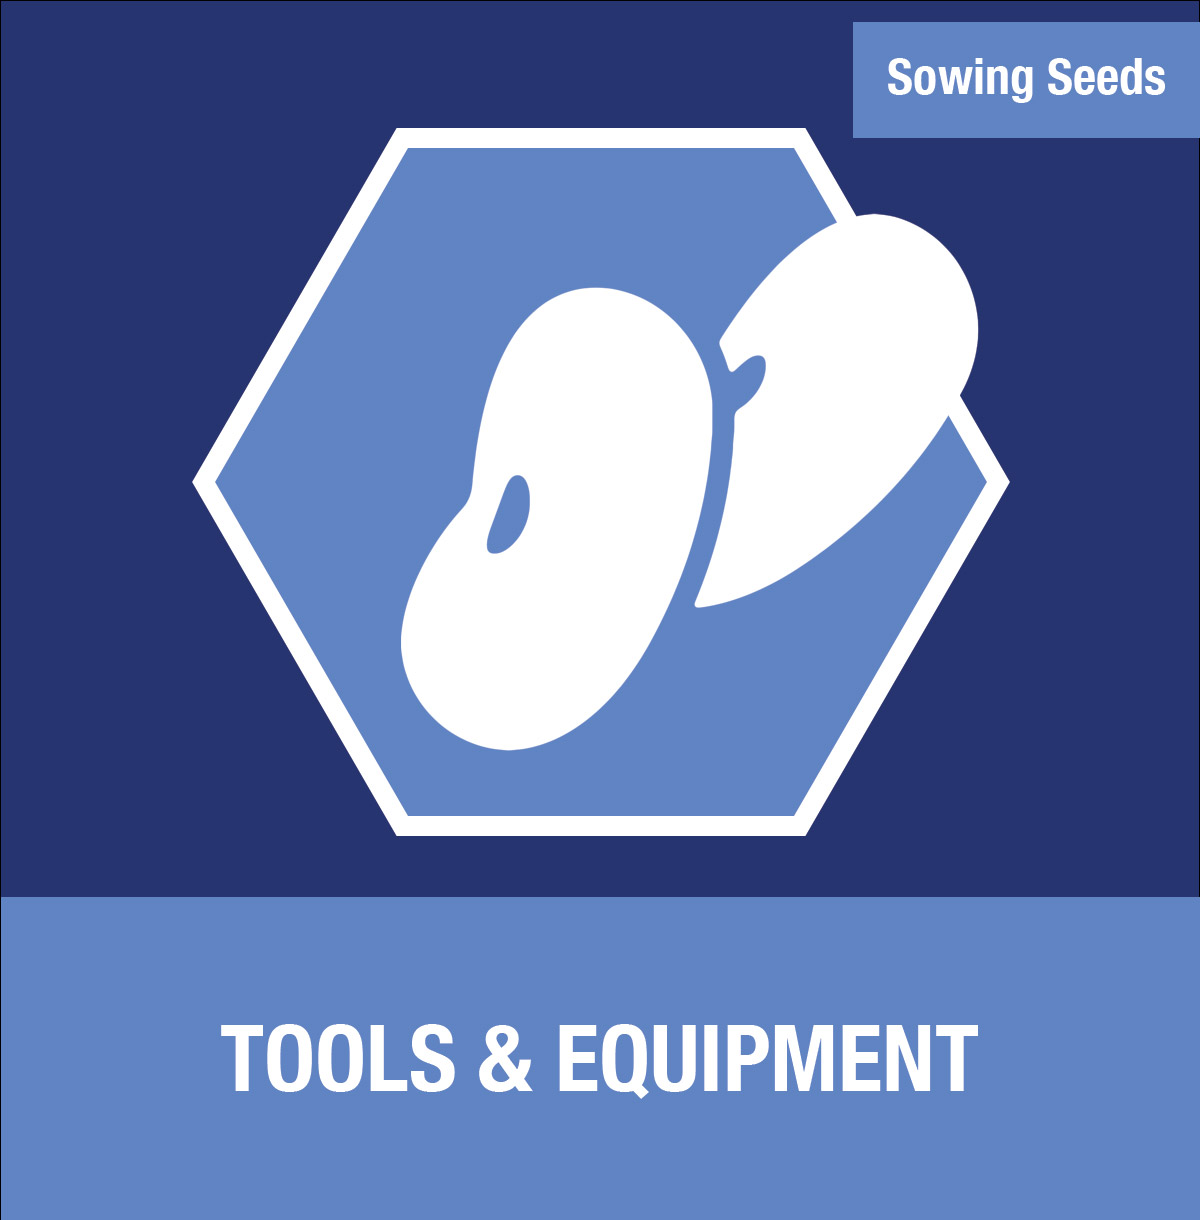 Sowing Seeds: Tools & Equipment